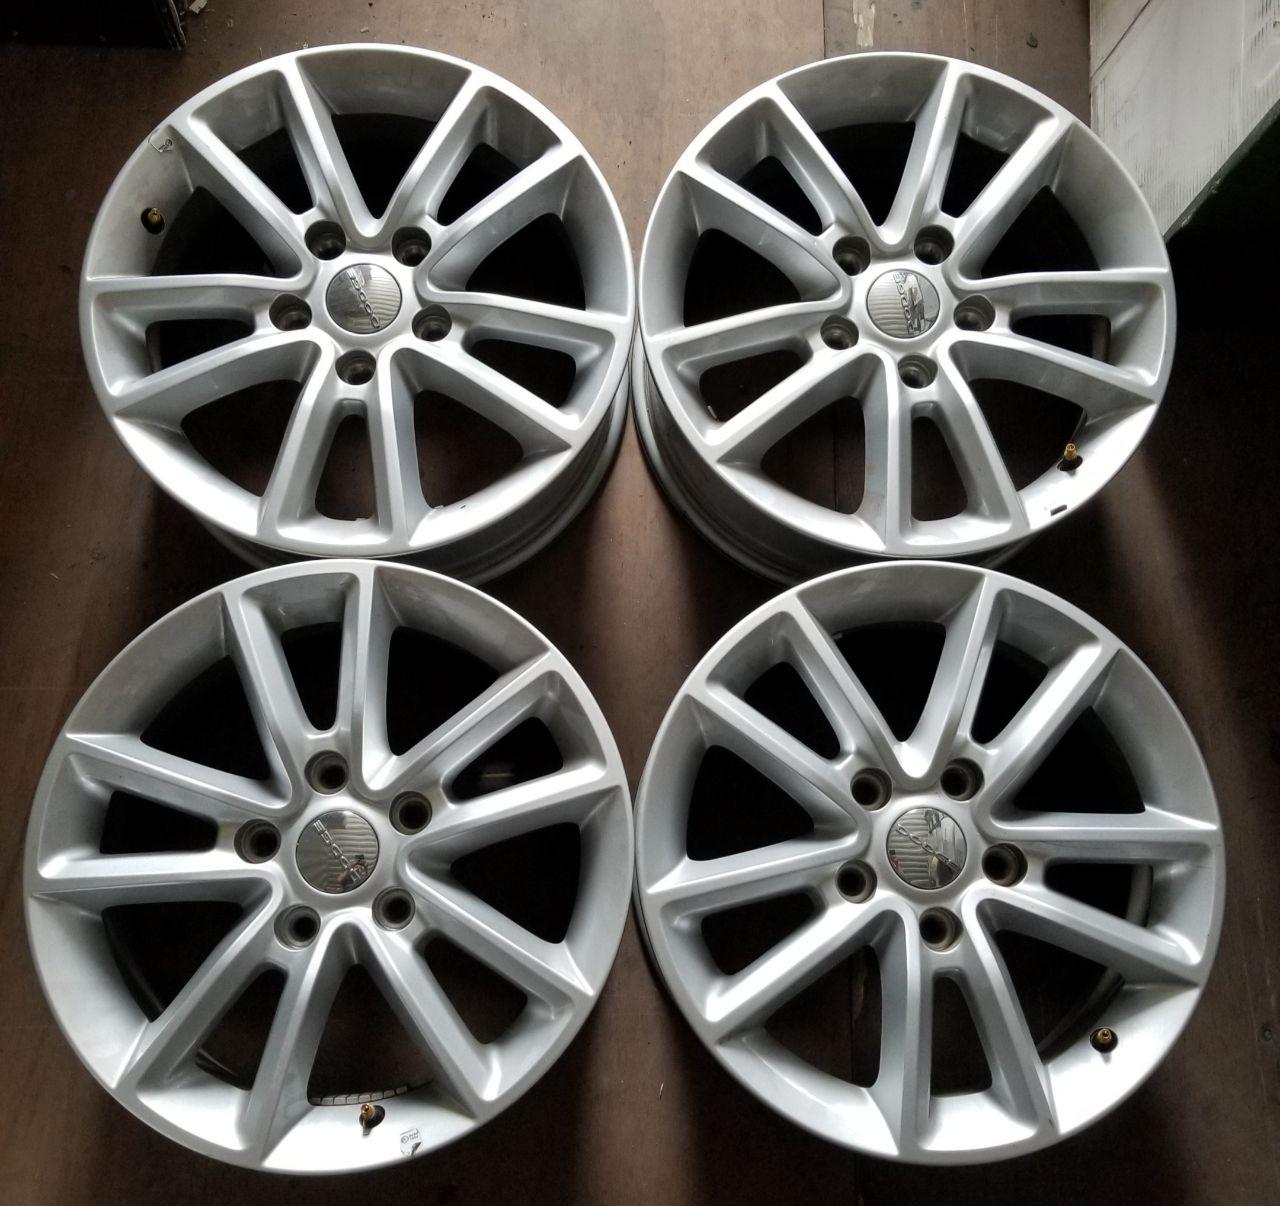 - OEM WHEELS - 2013-2014 DODGE JOURNEY 17x6.5 10 SPOKE Hollander #2460 /  USED